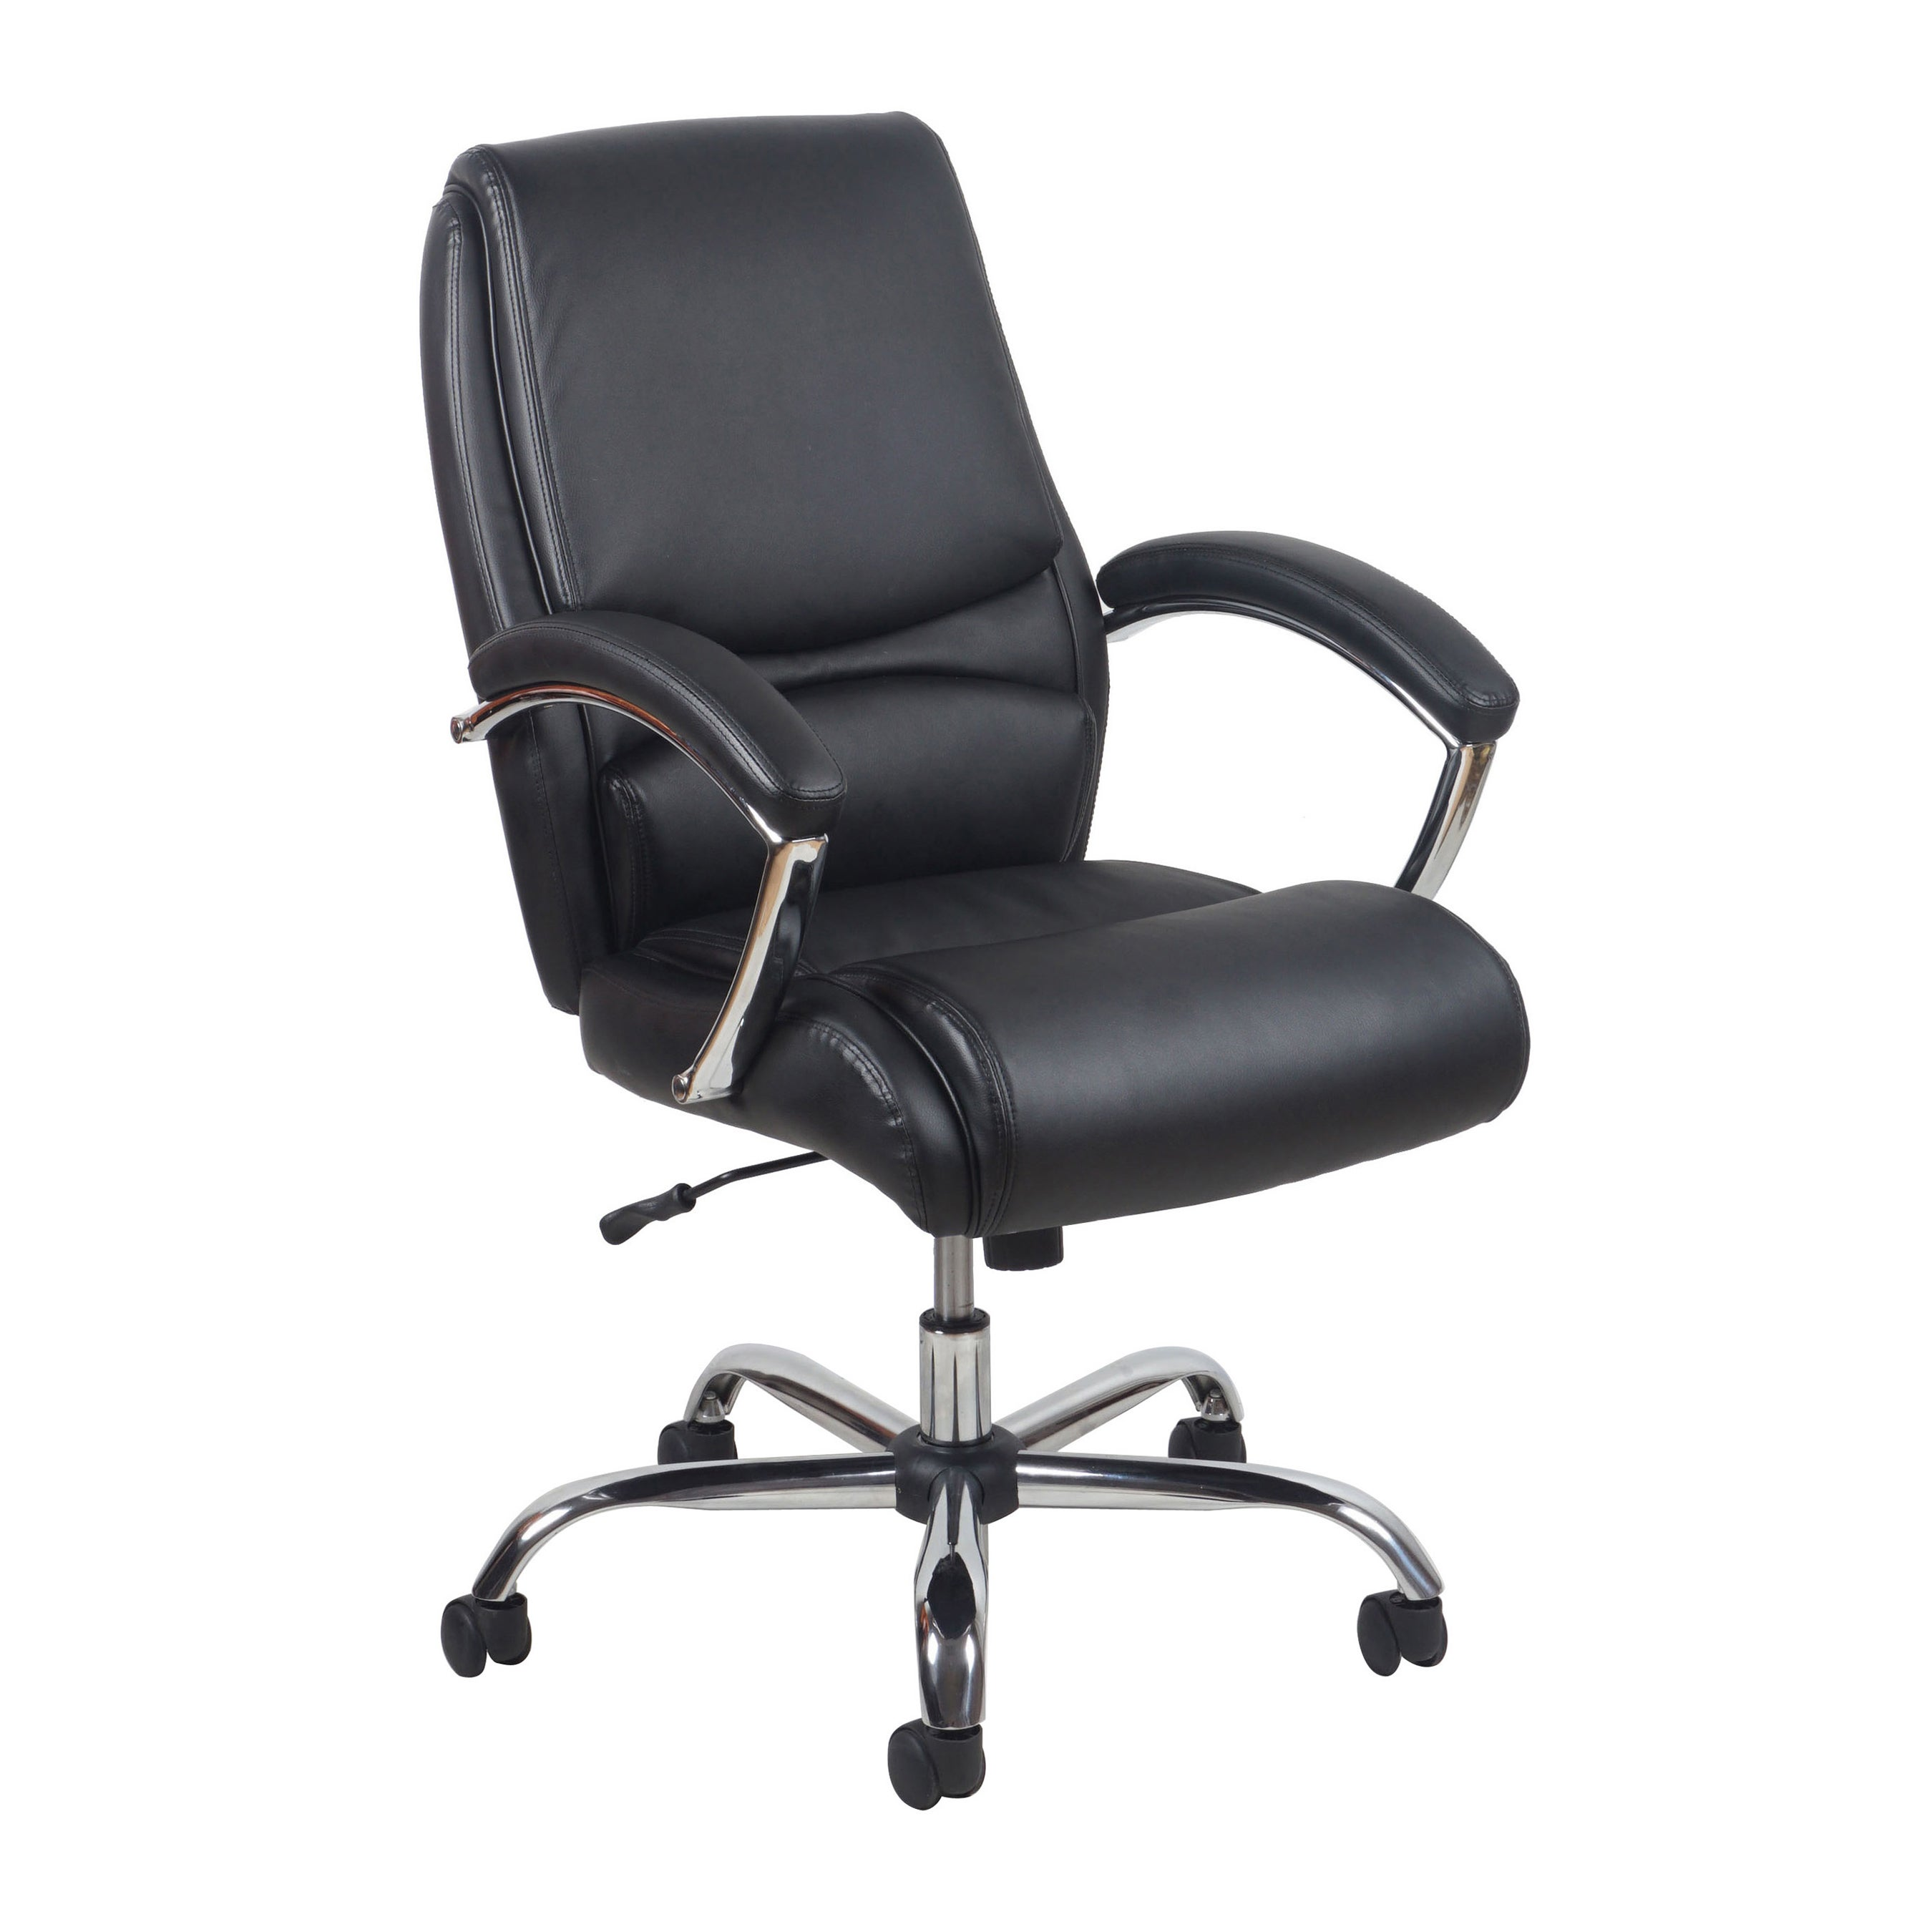 Enjoyable Essentials By Ofm Ergonomic High Back Leather Executive Office Chair With Arms Machost Co Dining Chair Design Ideas Machostcouk